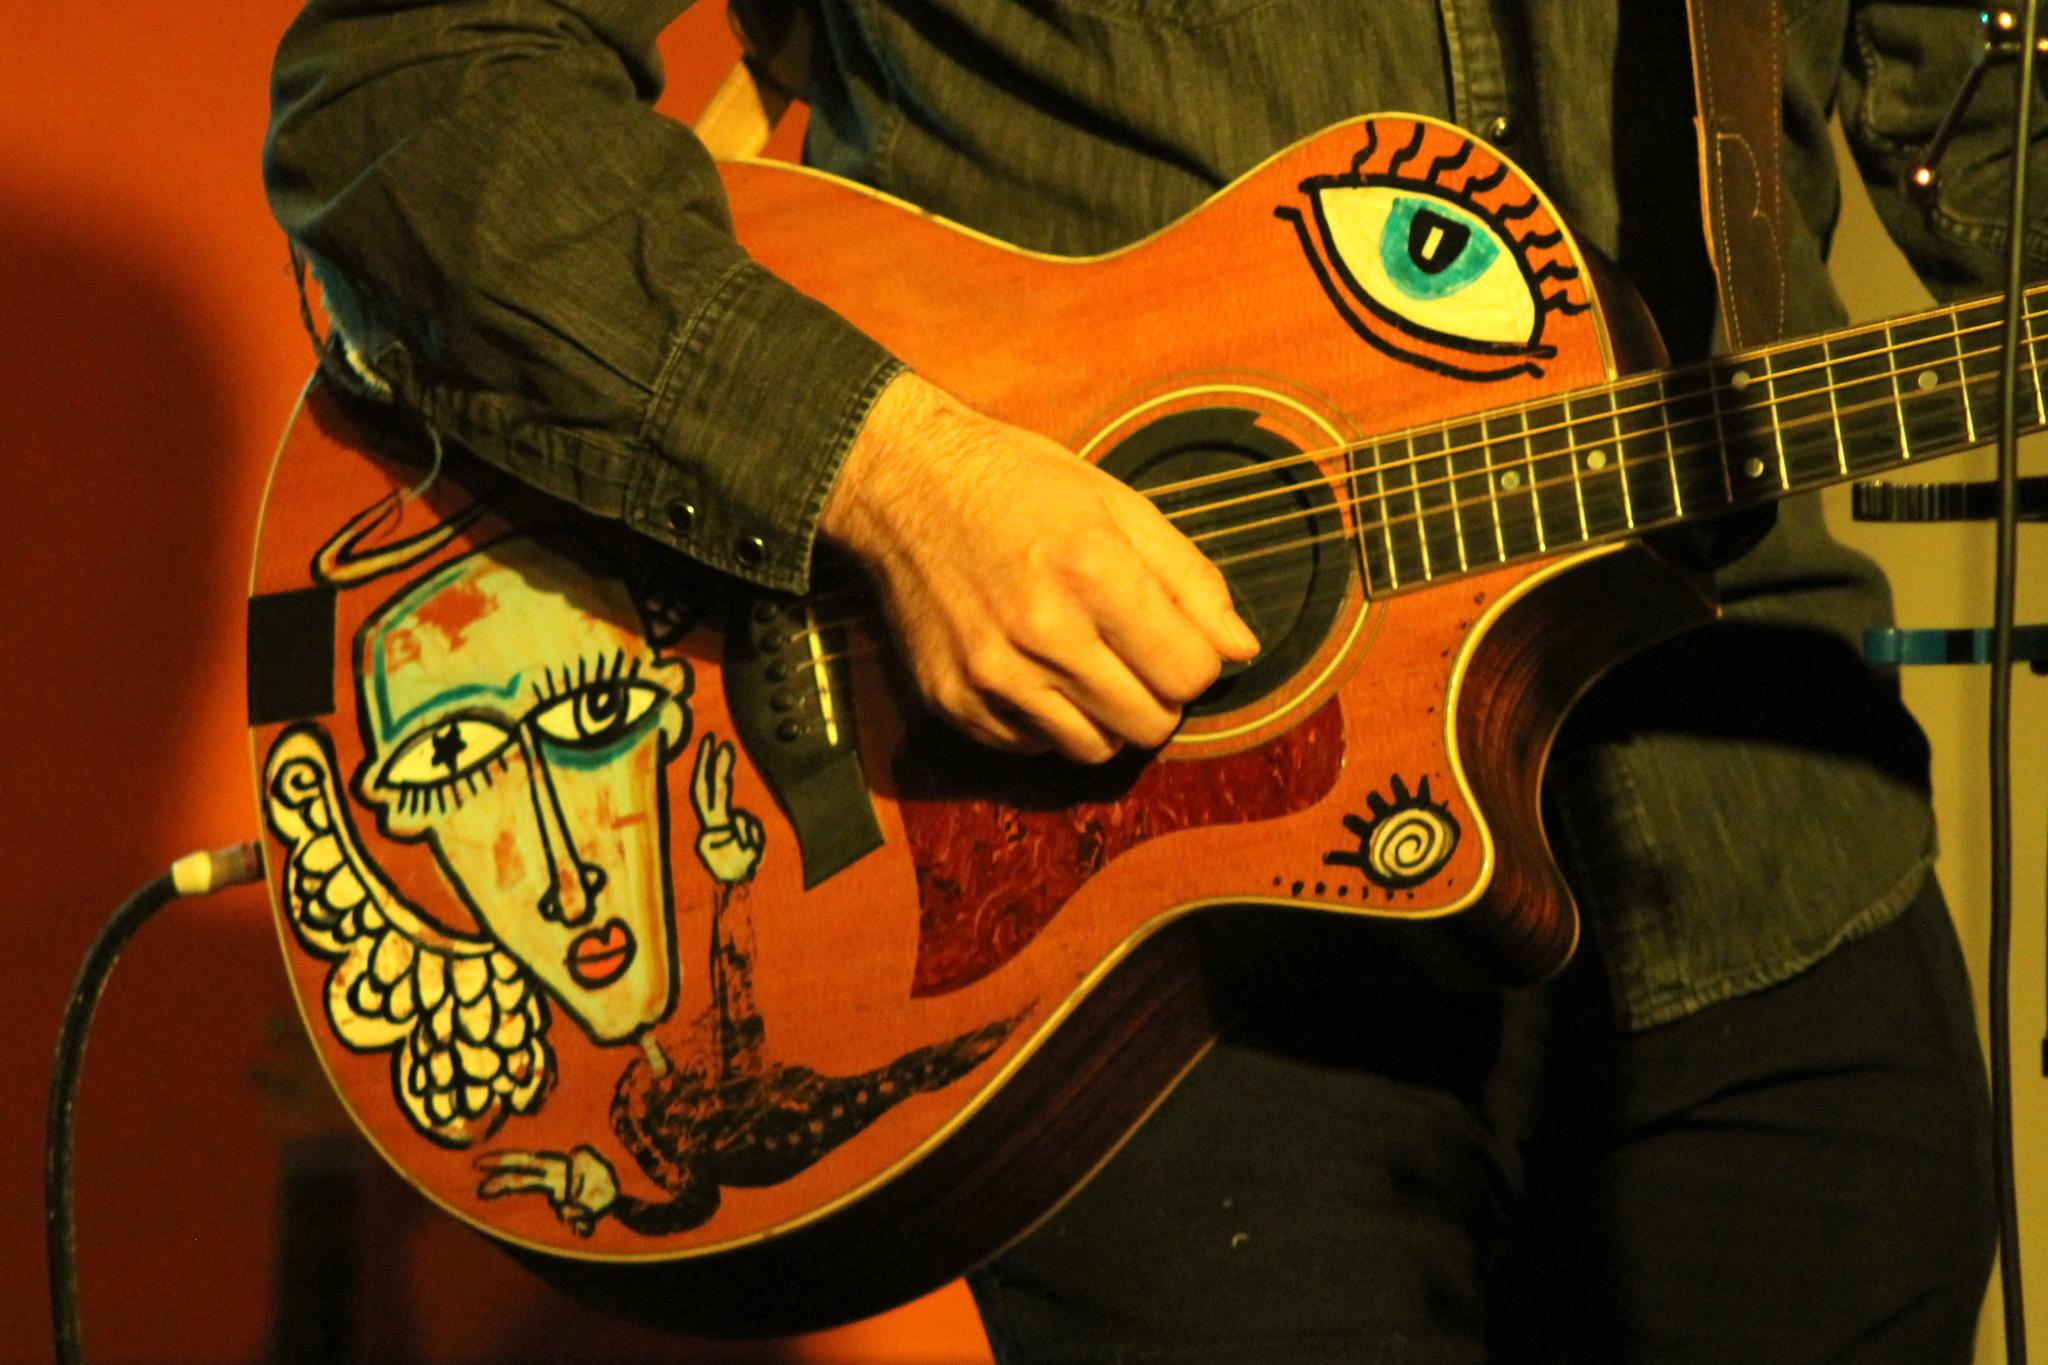 Painted guitar by Mark Hootman